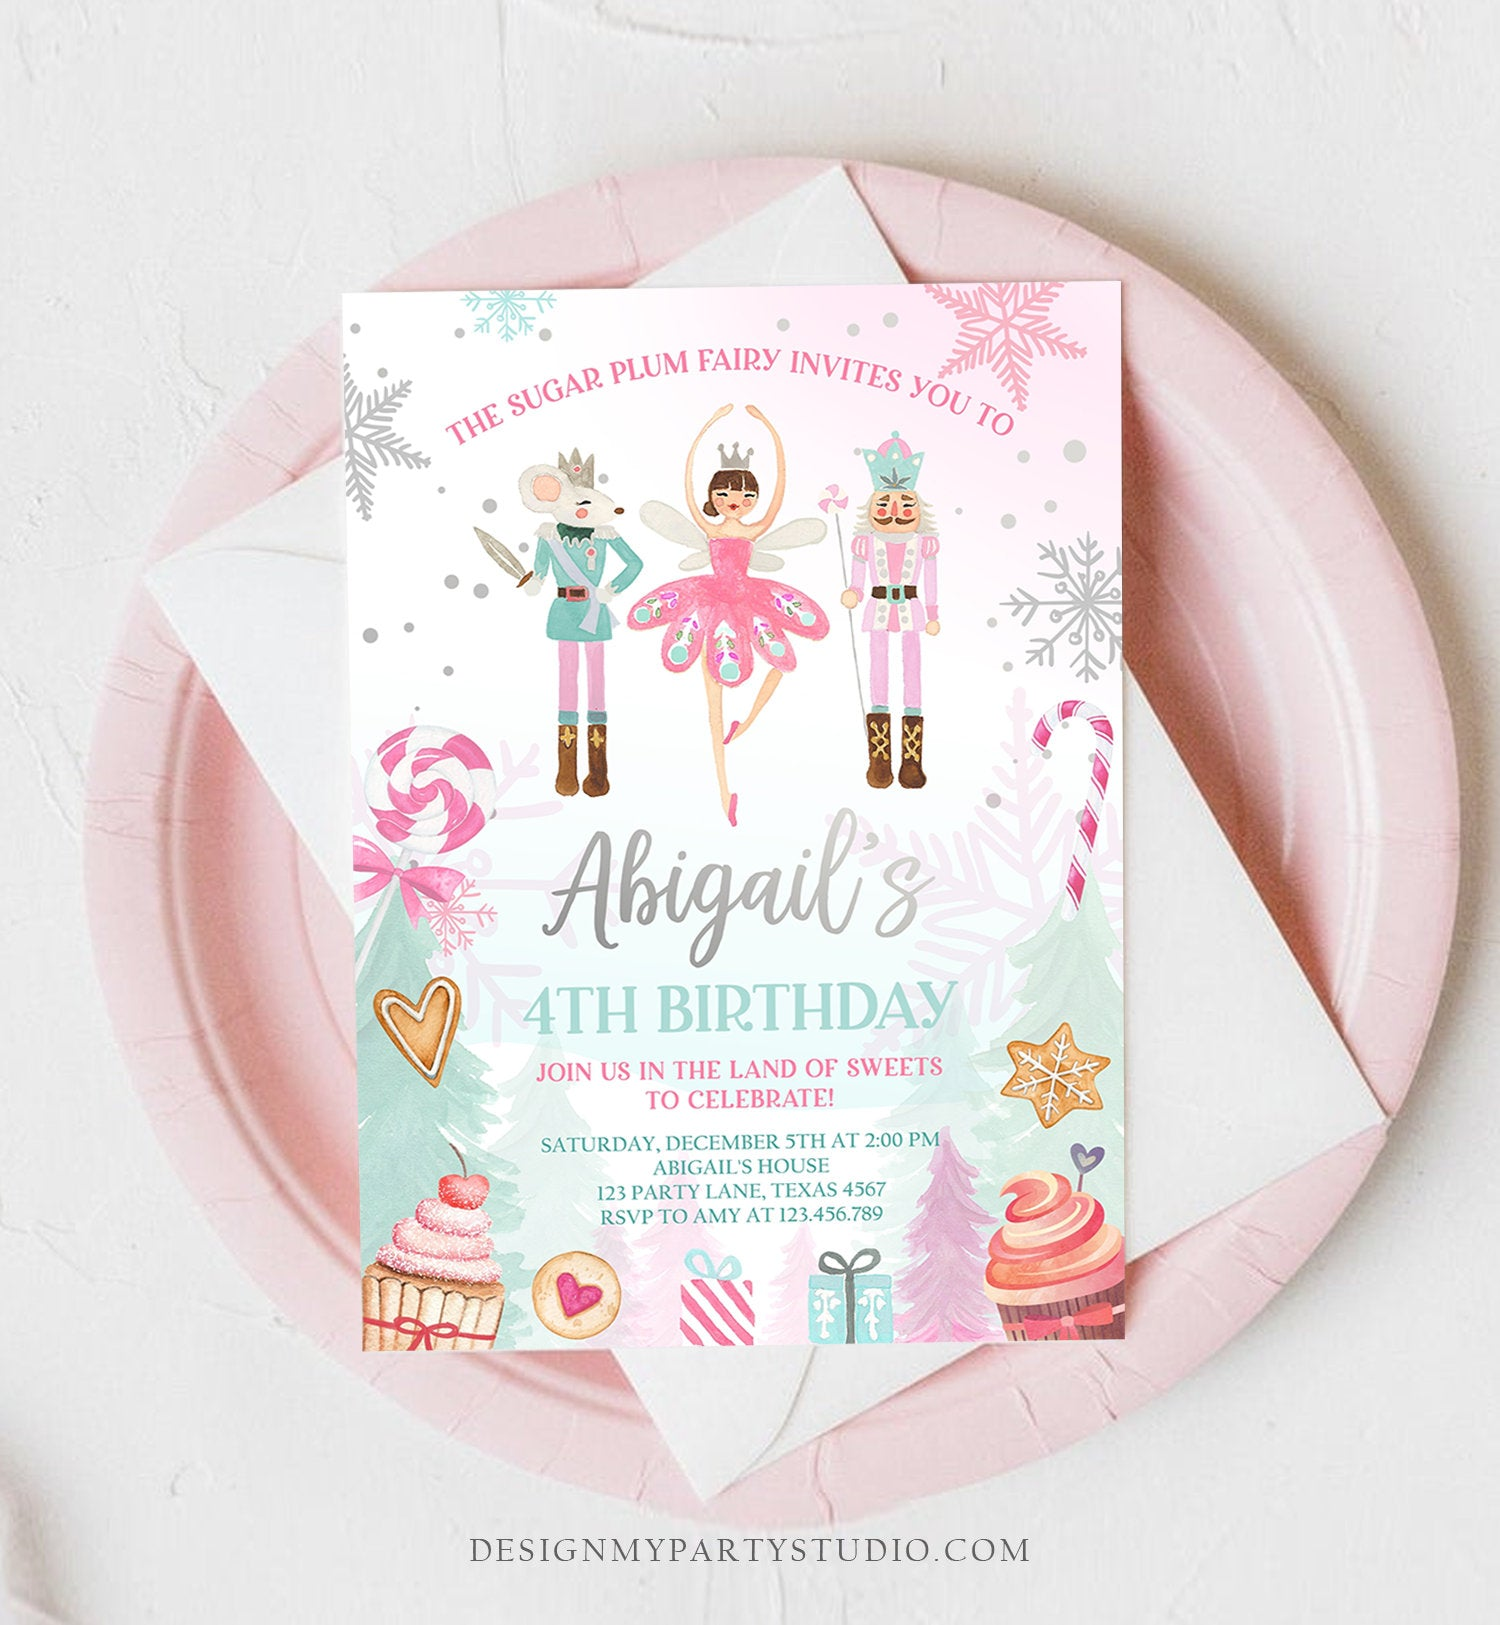 Editable Nutcracker Birthday Invitation Girl Land of Sweets Invite Winter Pink Girl Sugar Plum Fairy Download Printable Template Corjl 0352